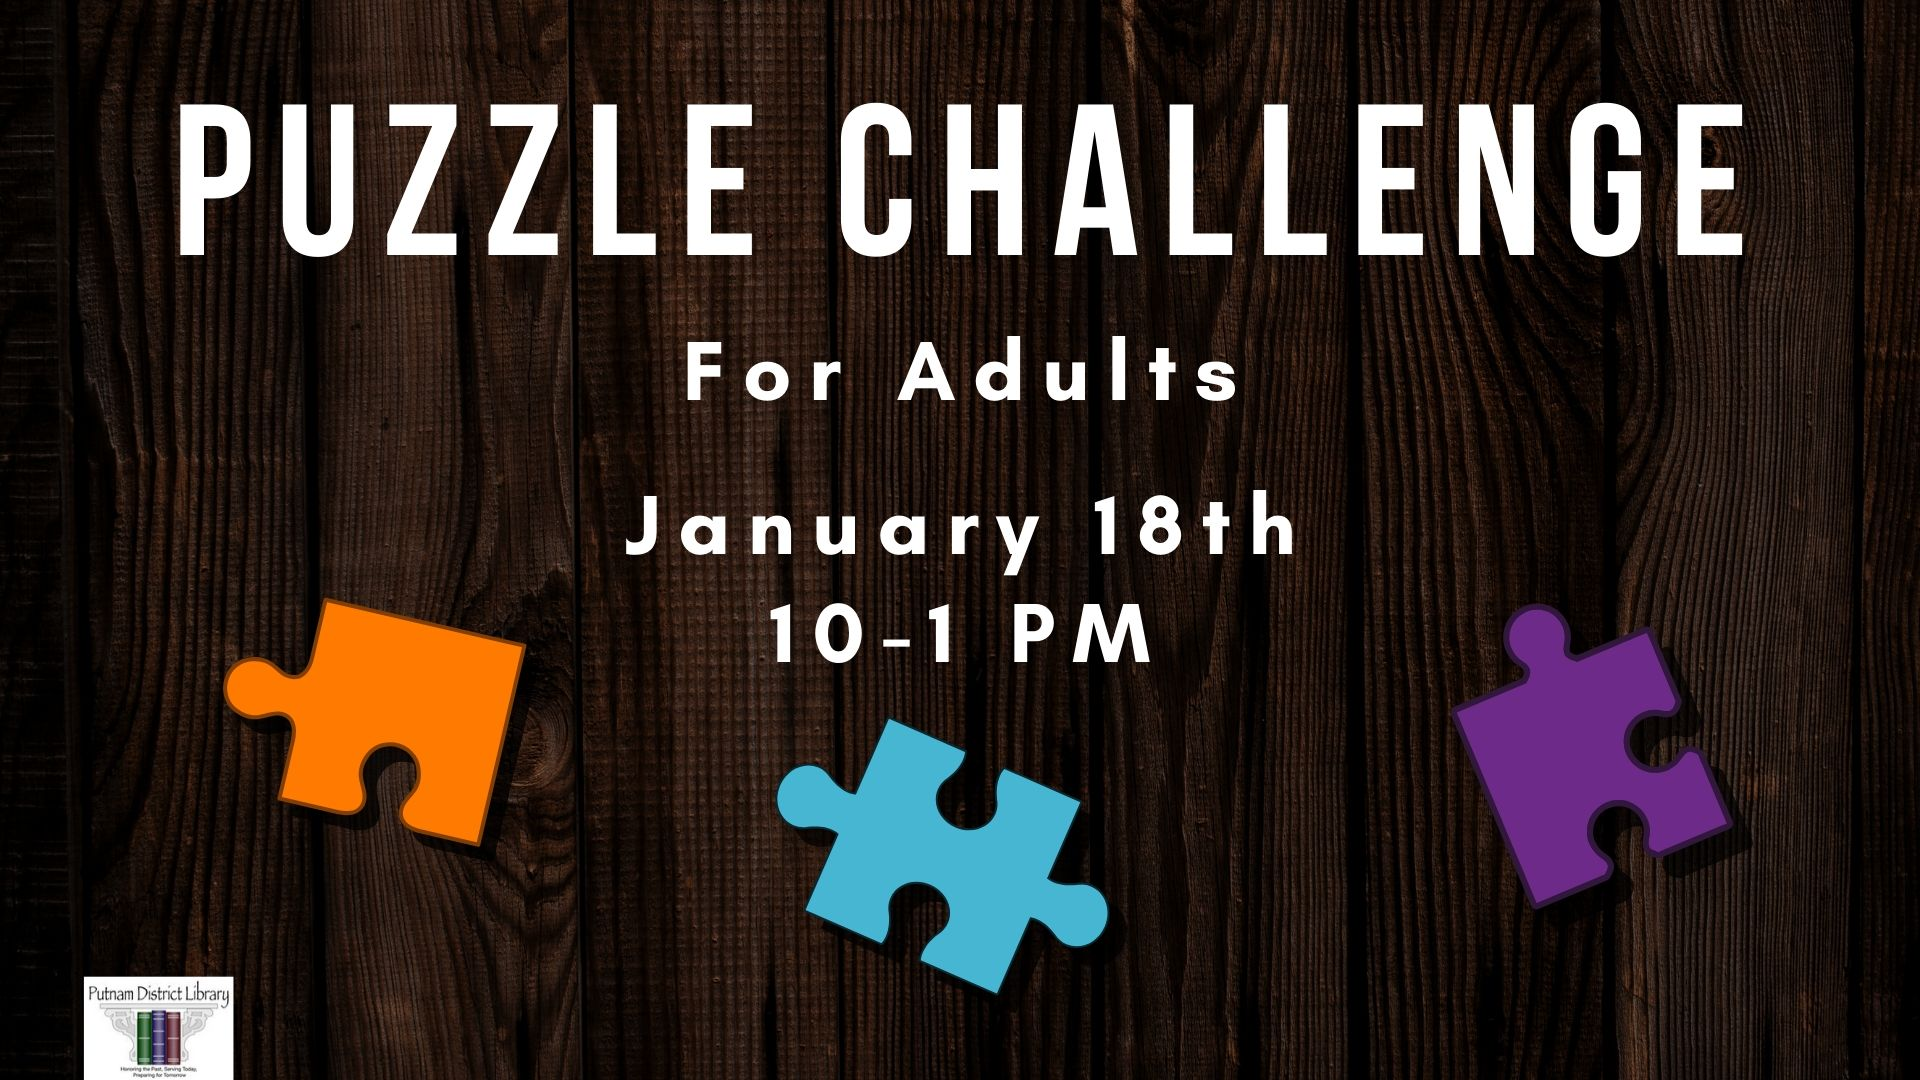 Puzzle Challenge for Adults